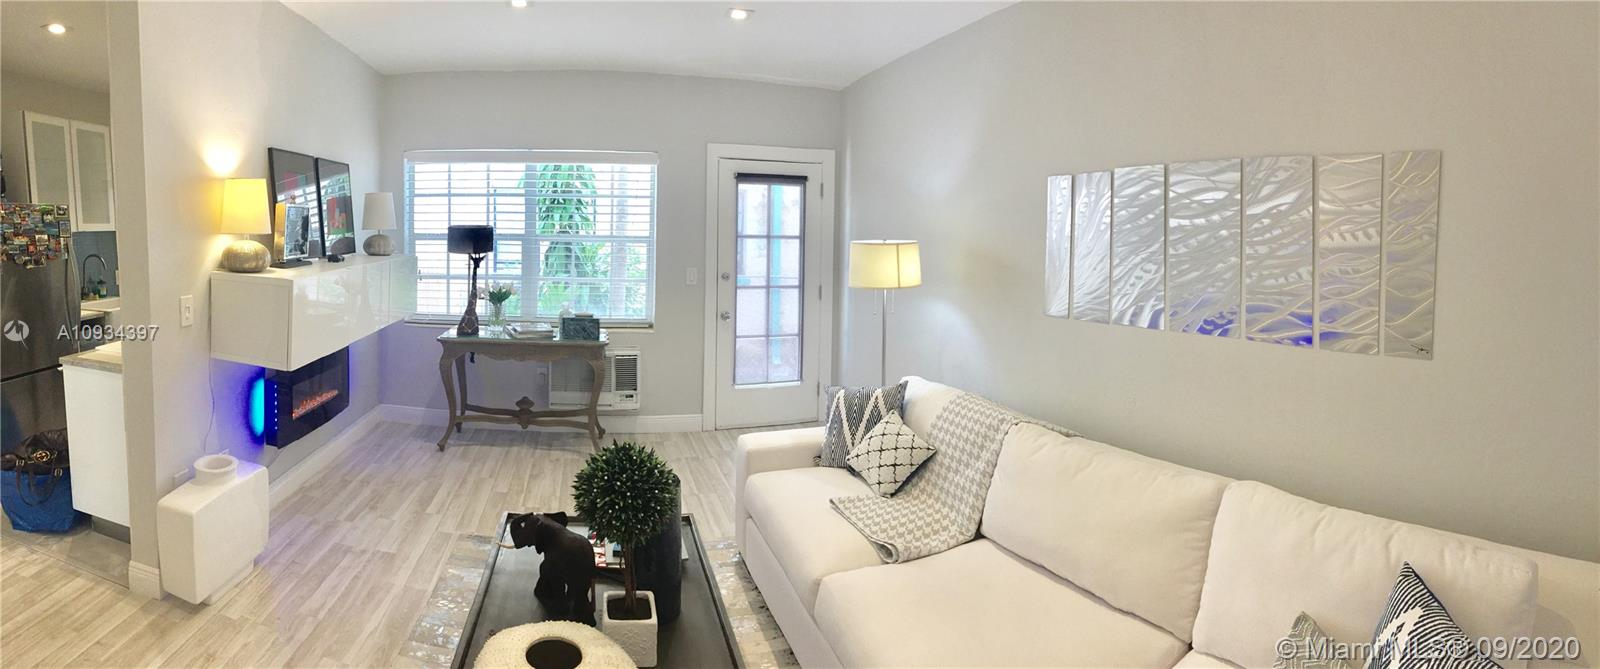 1551  Michigan Ave #6 For Sale A10934397, FL